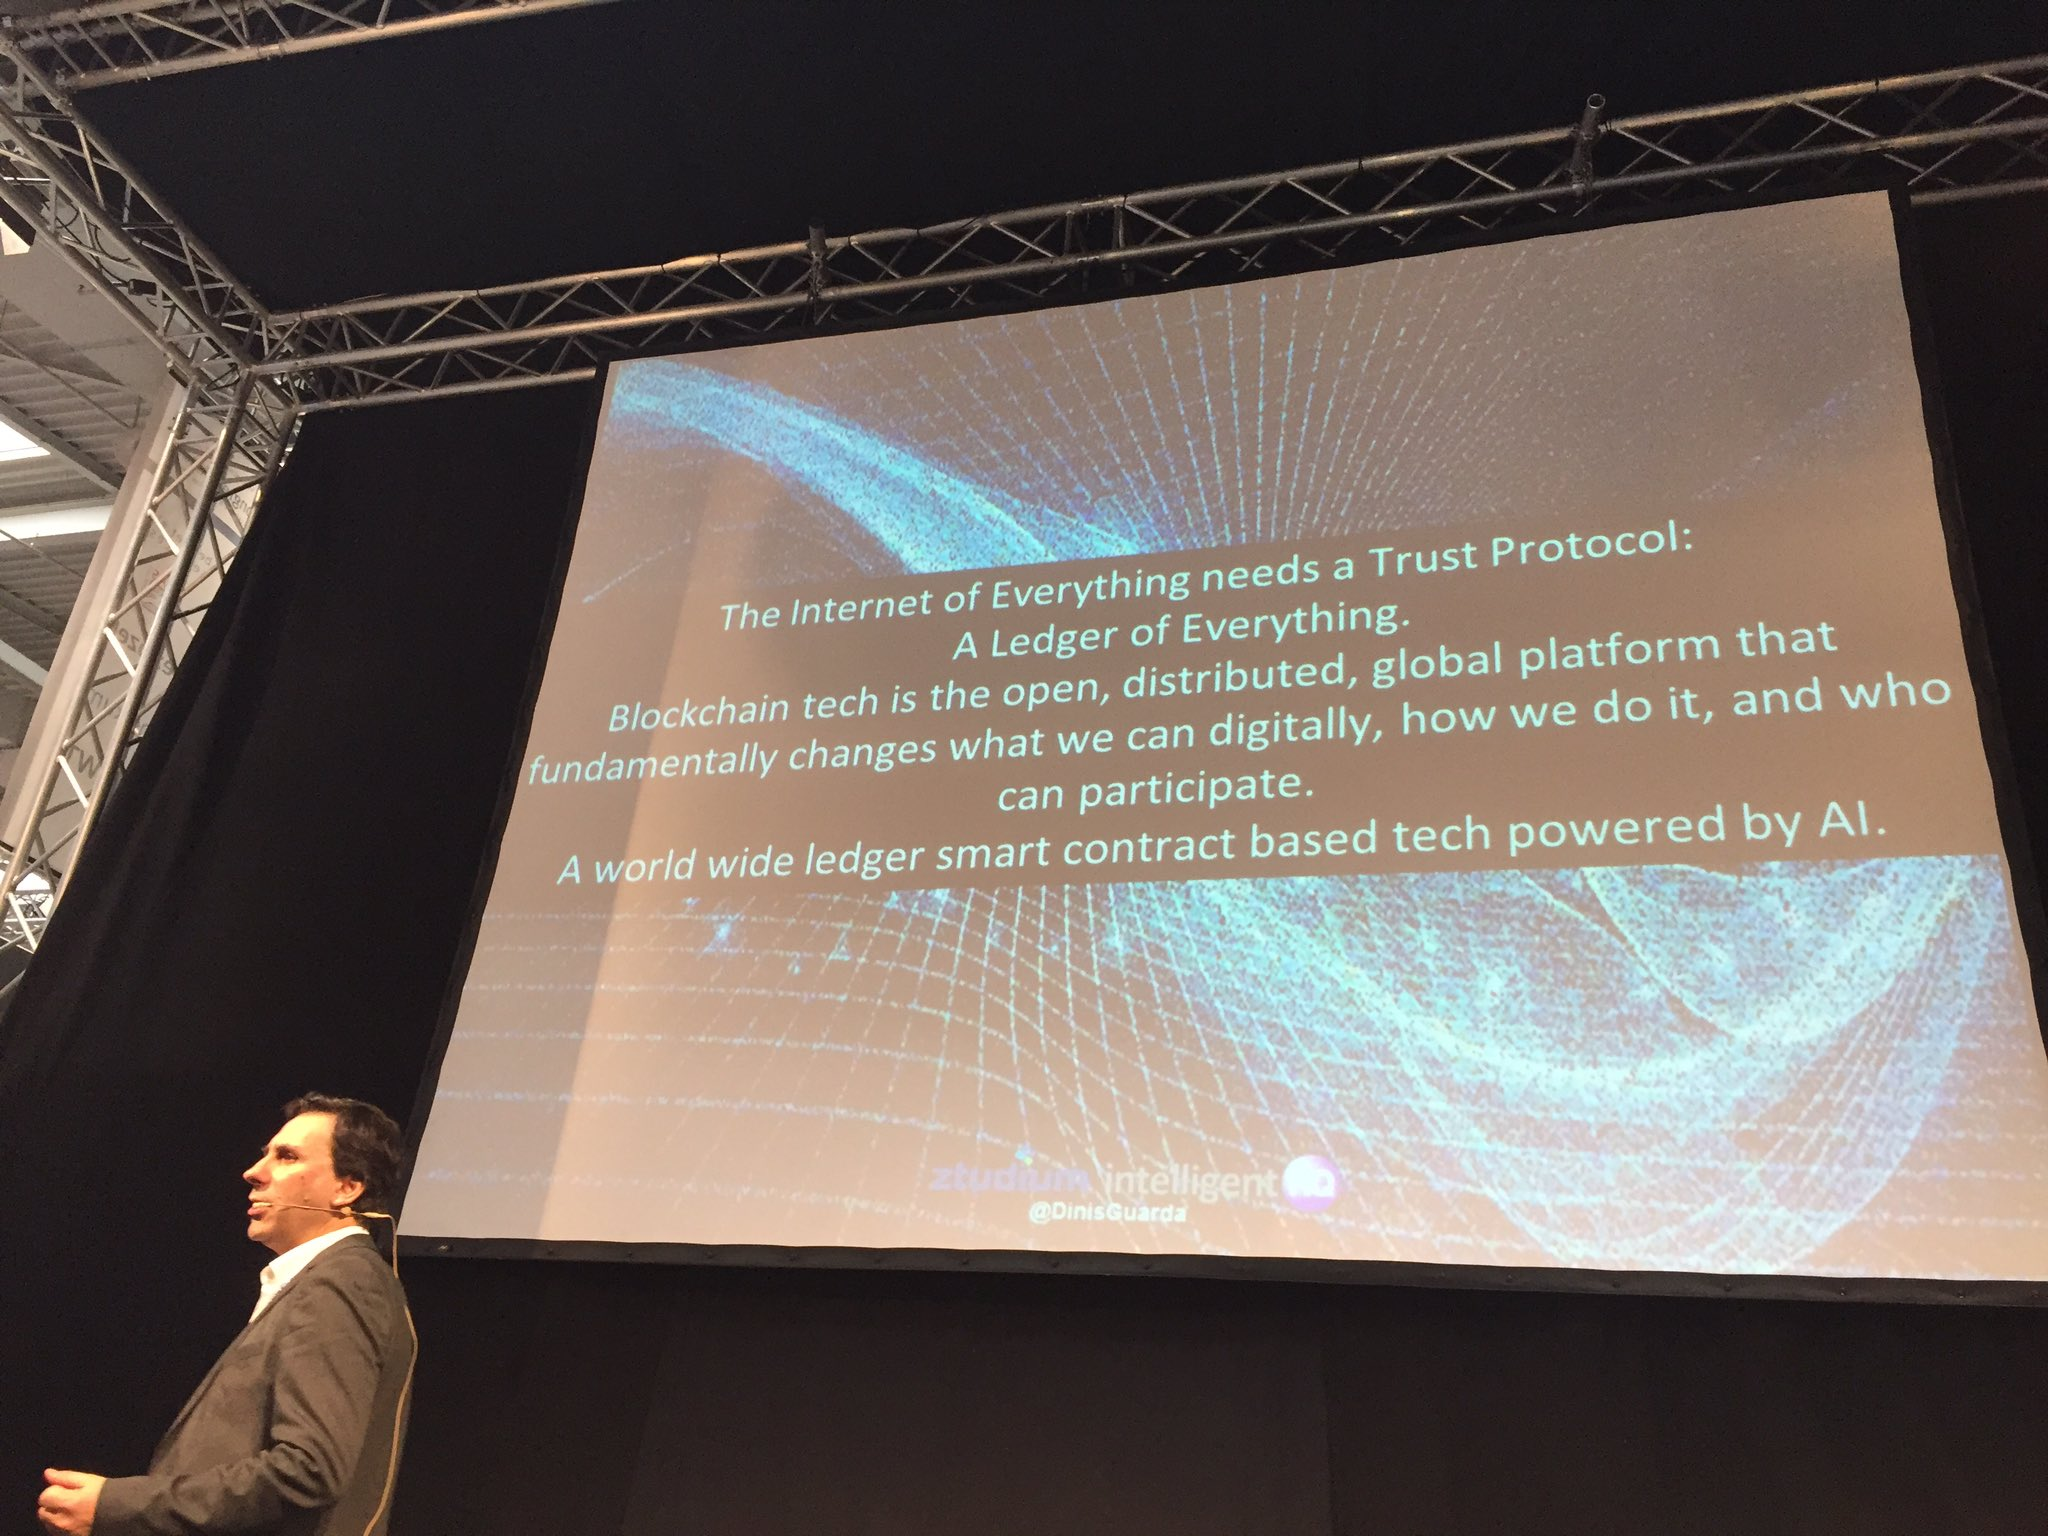 The trust protocol @dinisguarda at #cebiteda #blockchain https://t.co/A8rF74CppE